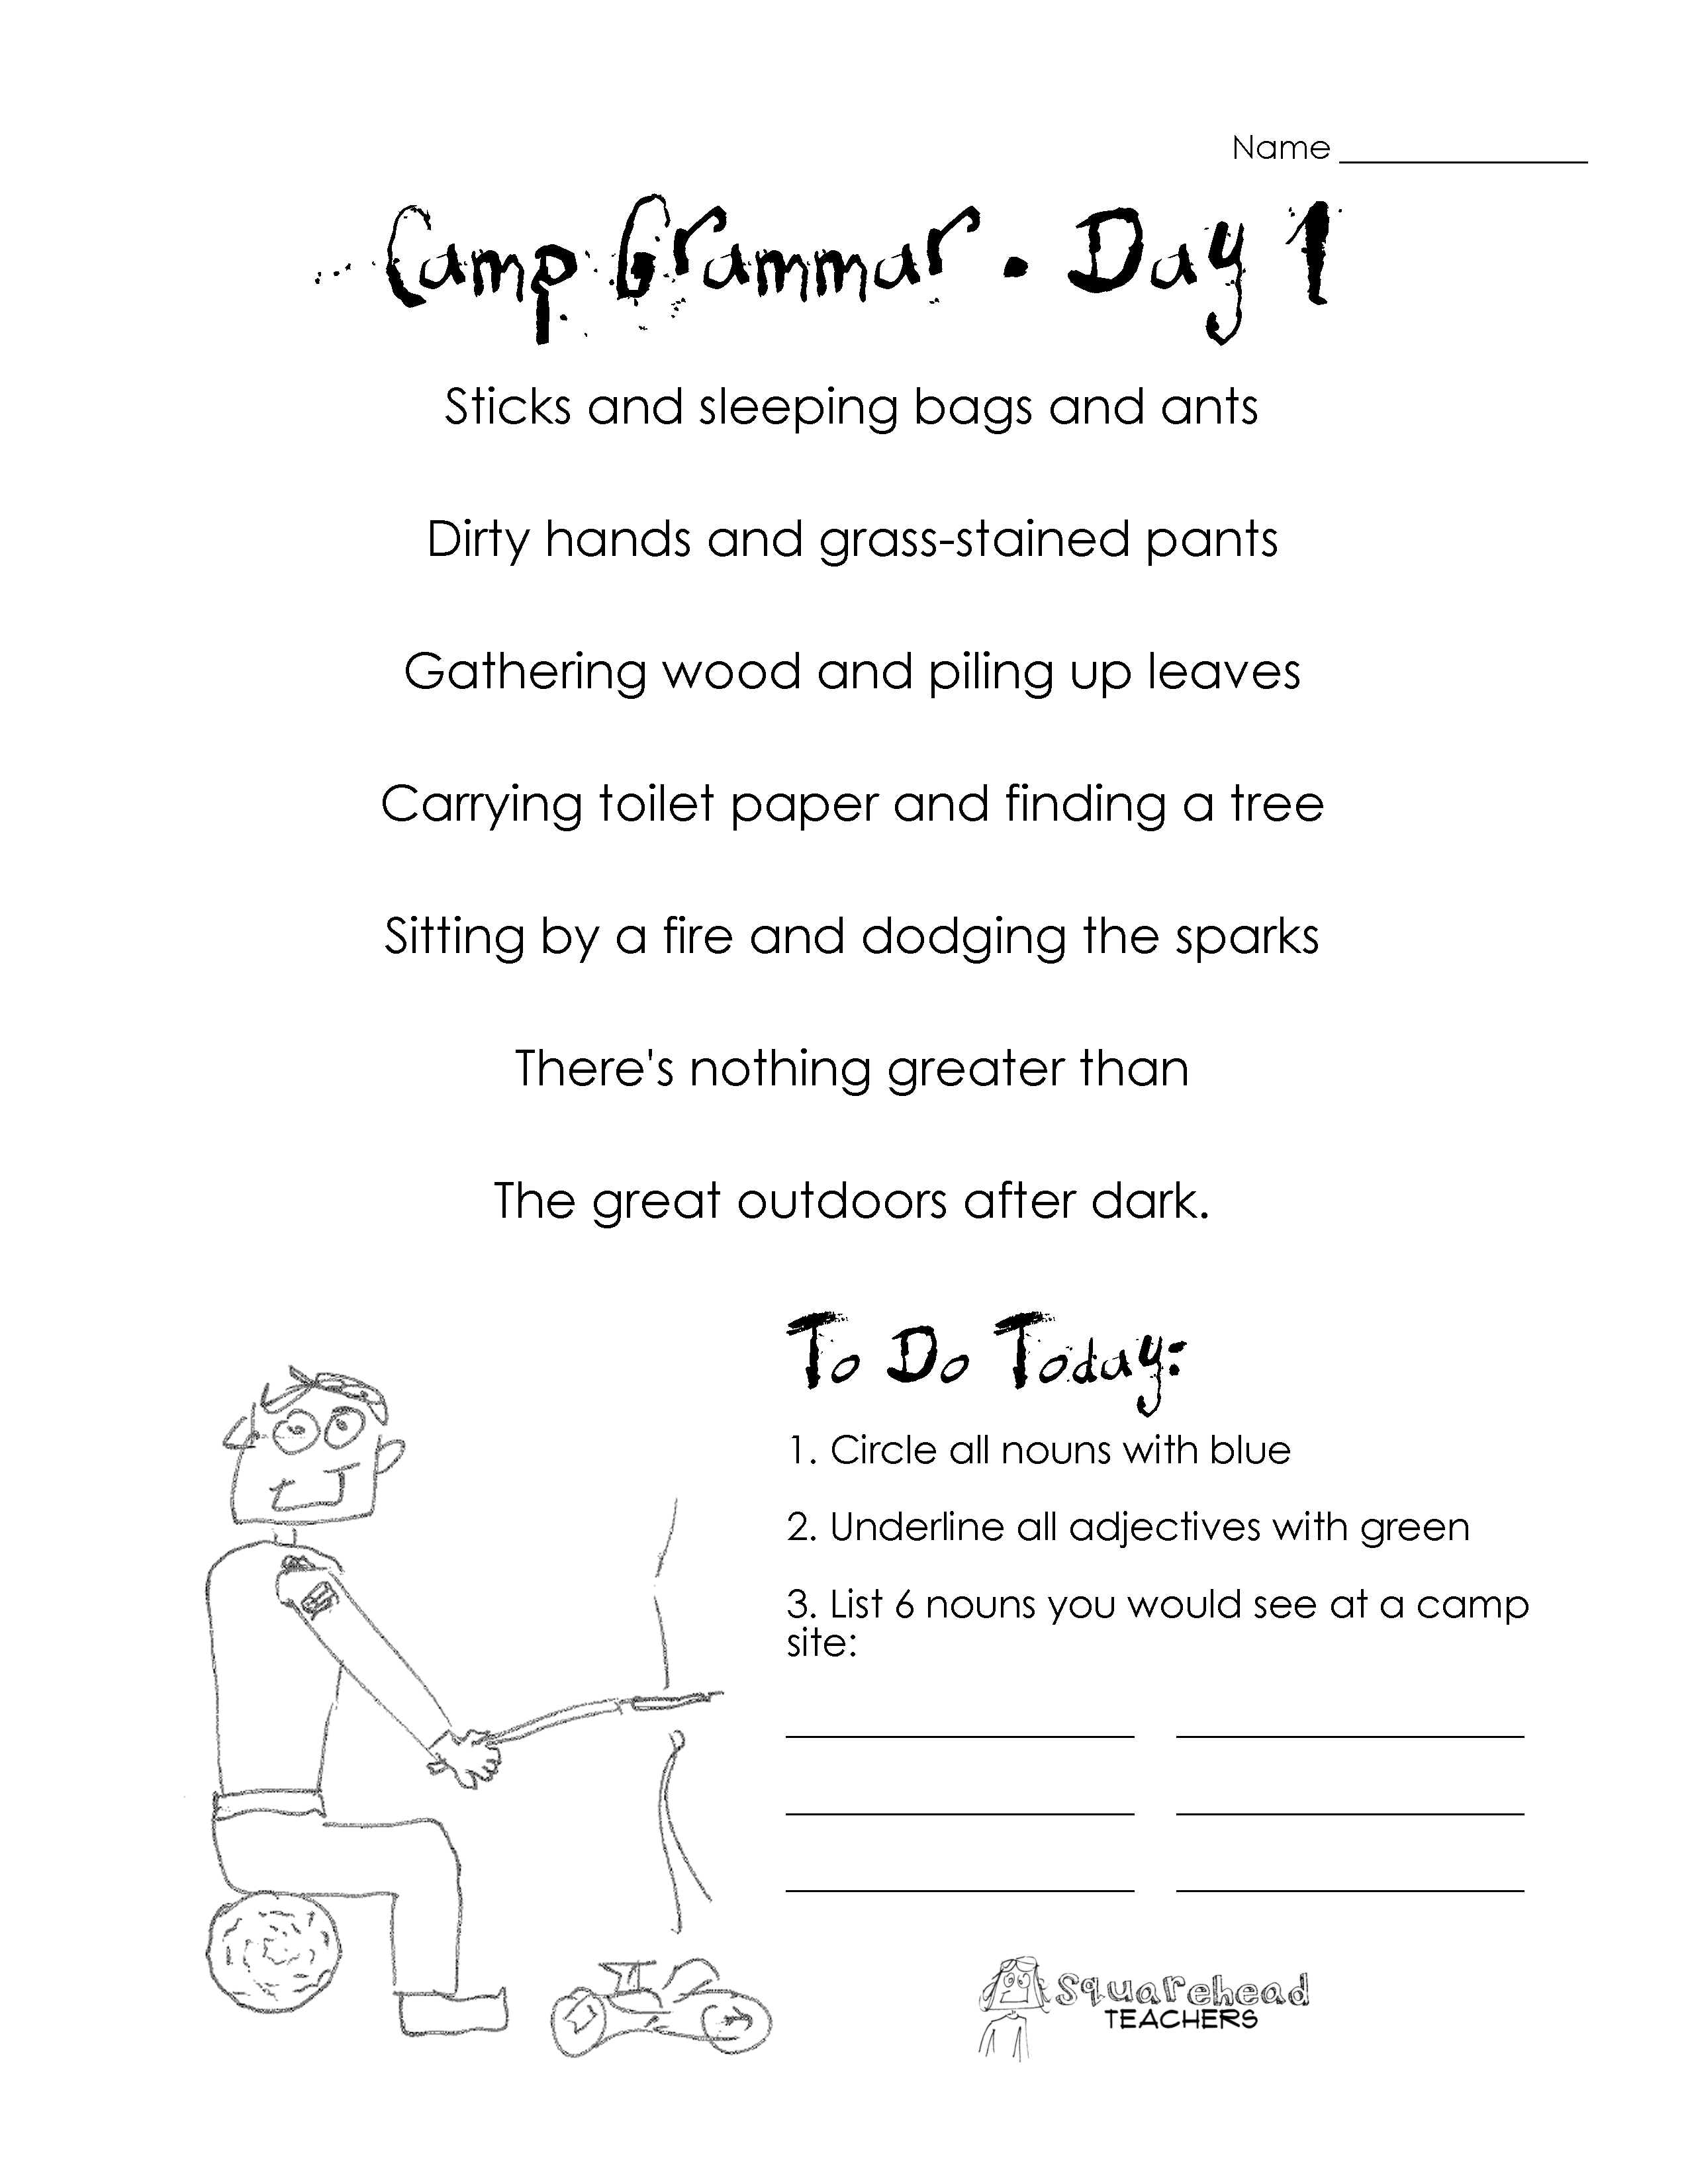 HD wallpapers teach english worksheets printables